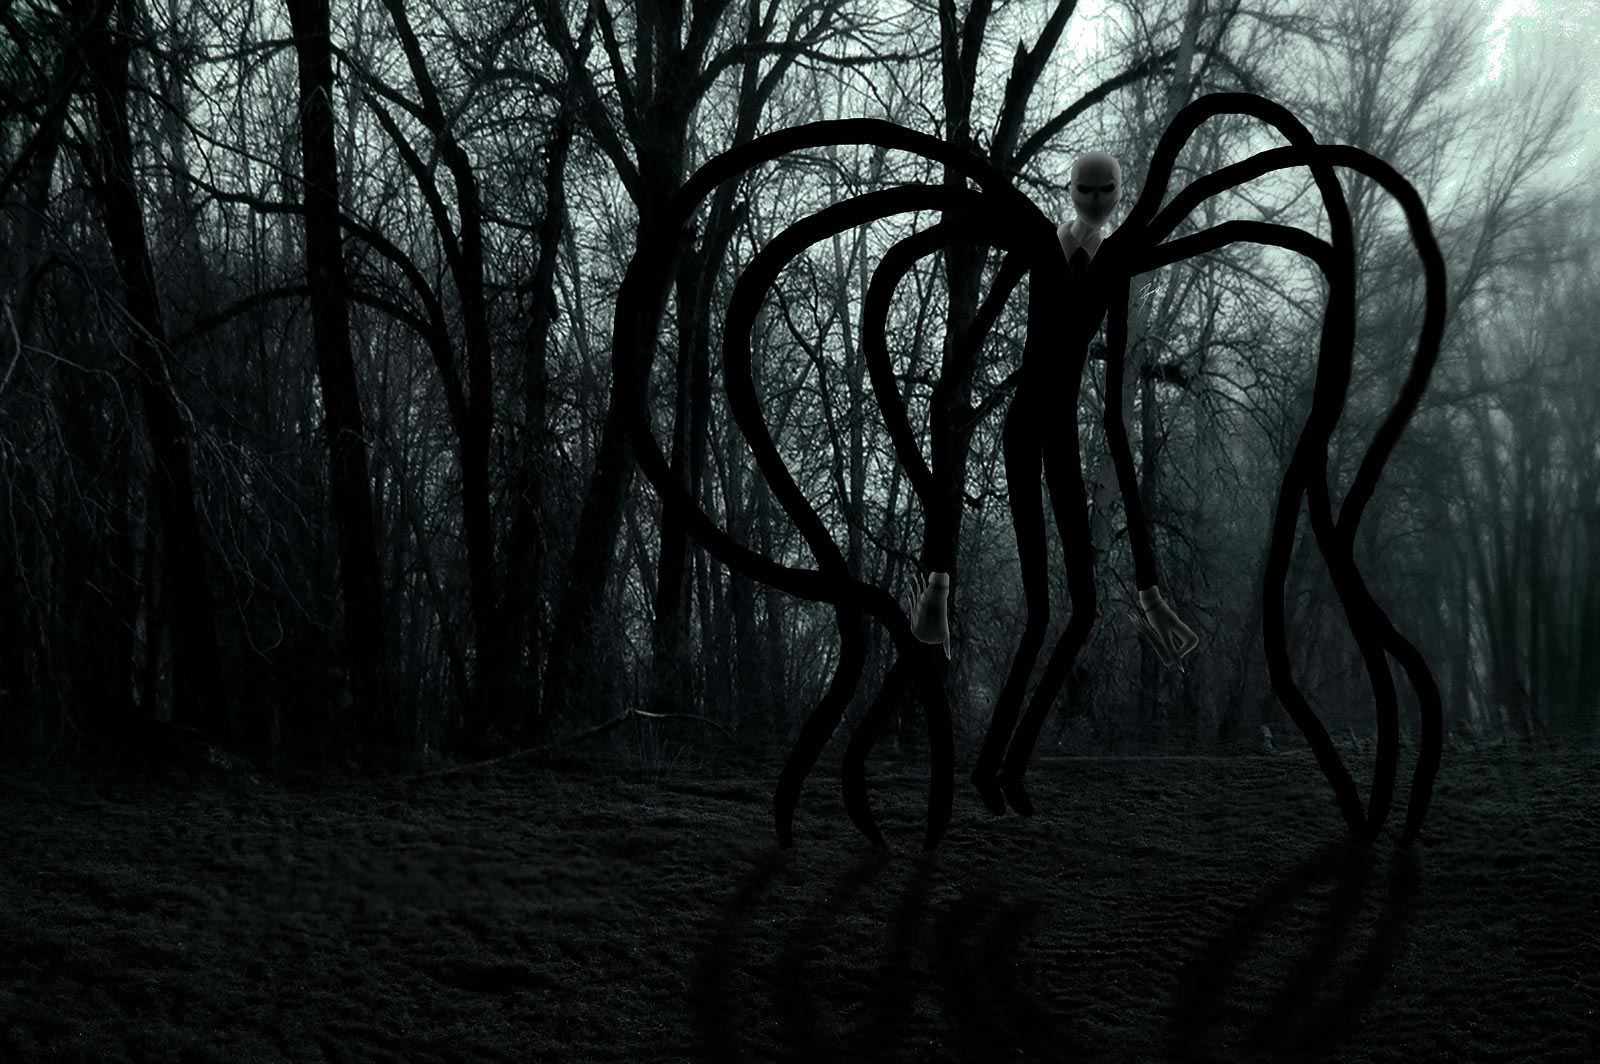 Creepiest Slenderman Photos - Crazy Scary Games - Online Games